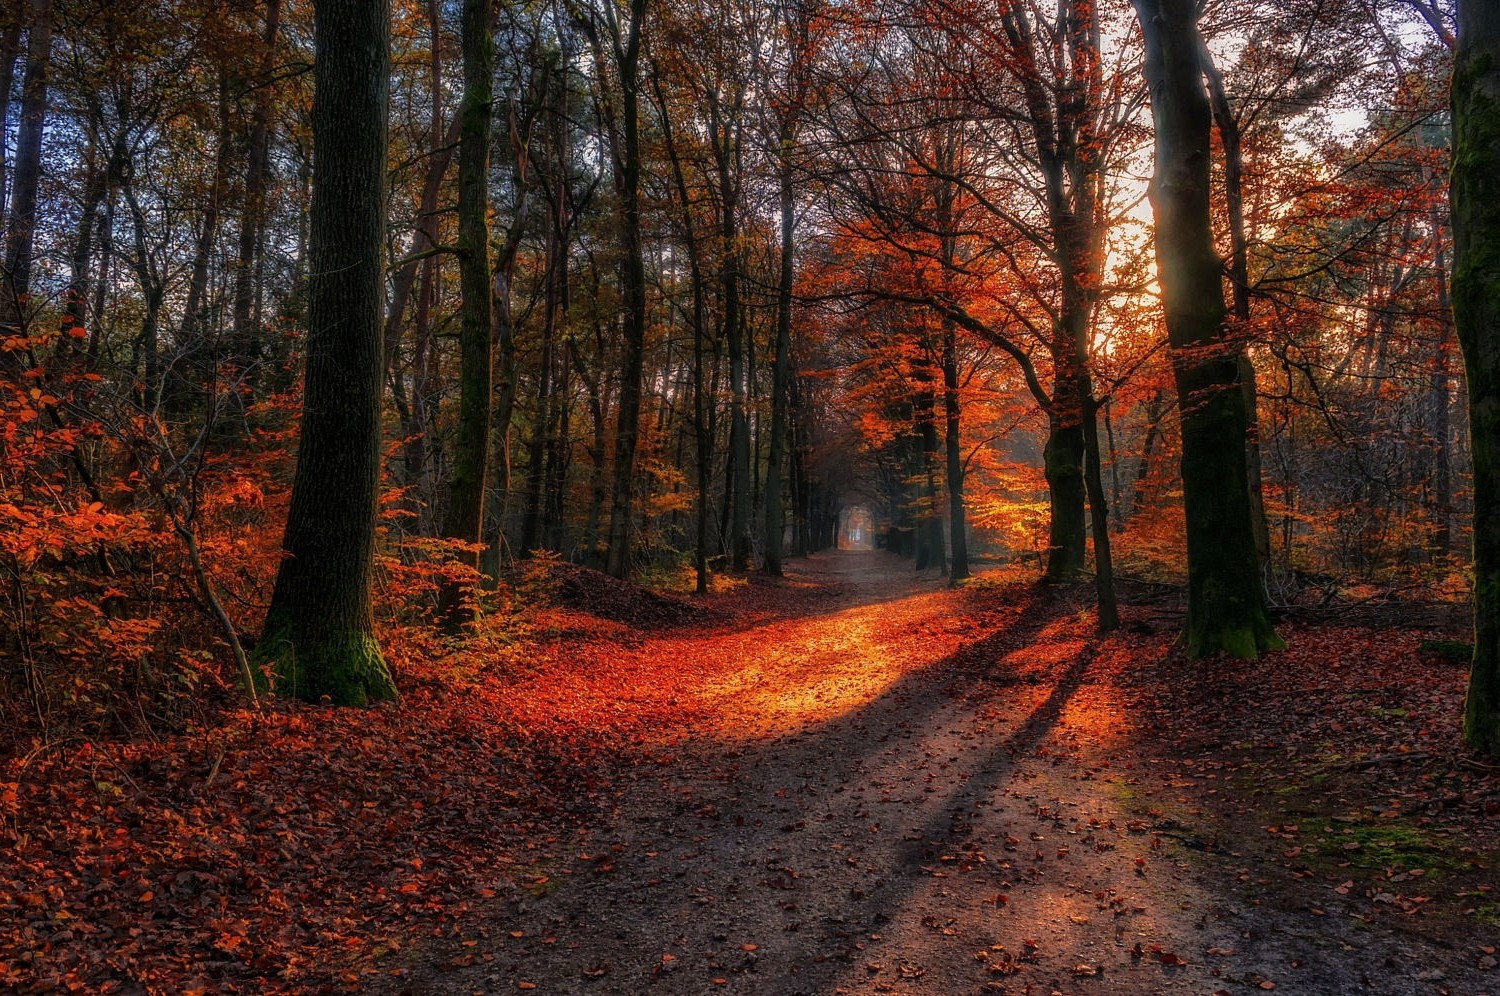 Full Screen Desktop Fall Leaves Wallpaper Landscape Nature Path Fall Forest Red Leaves